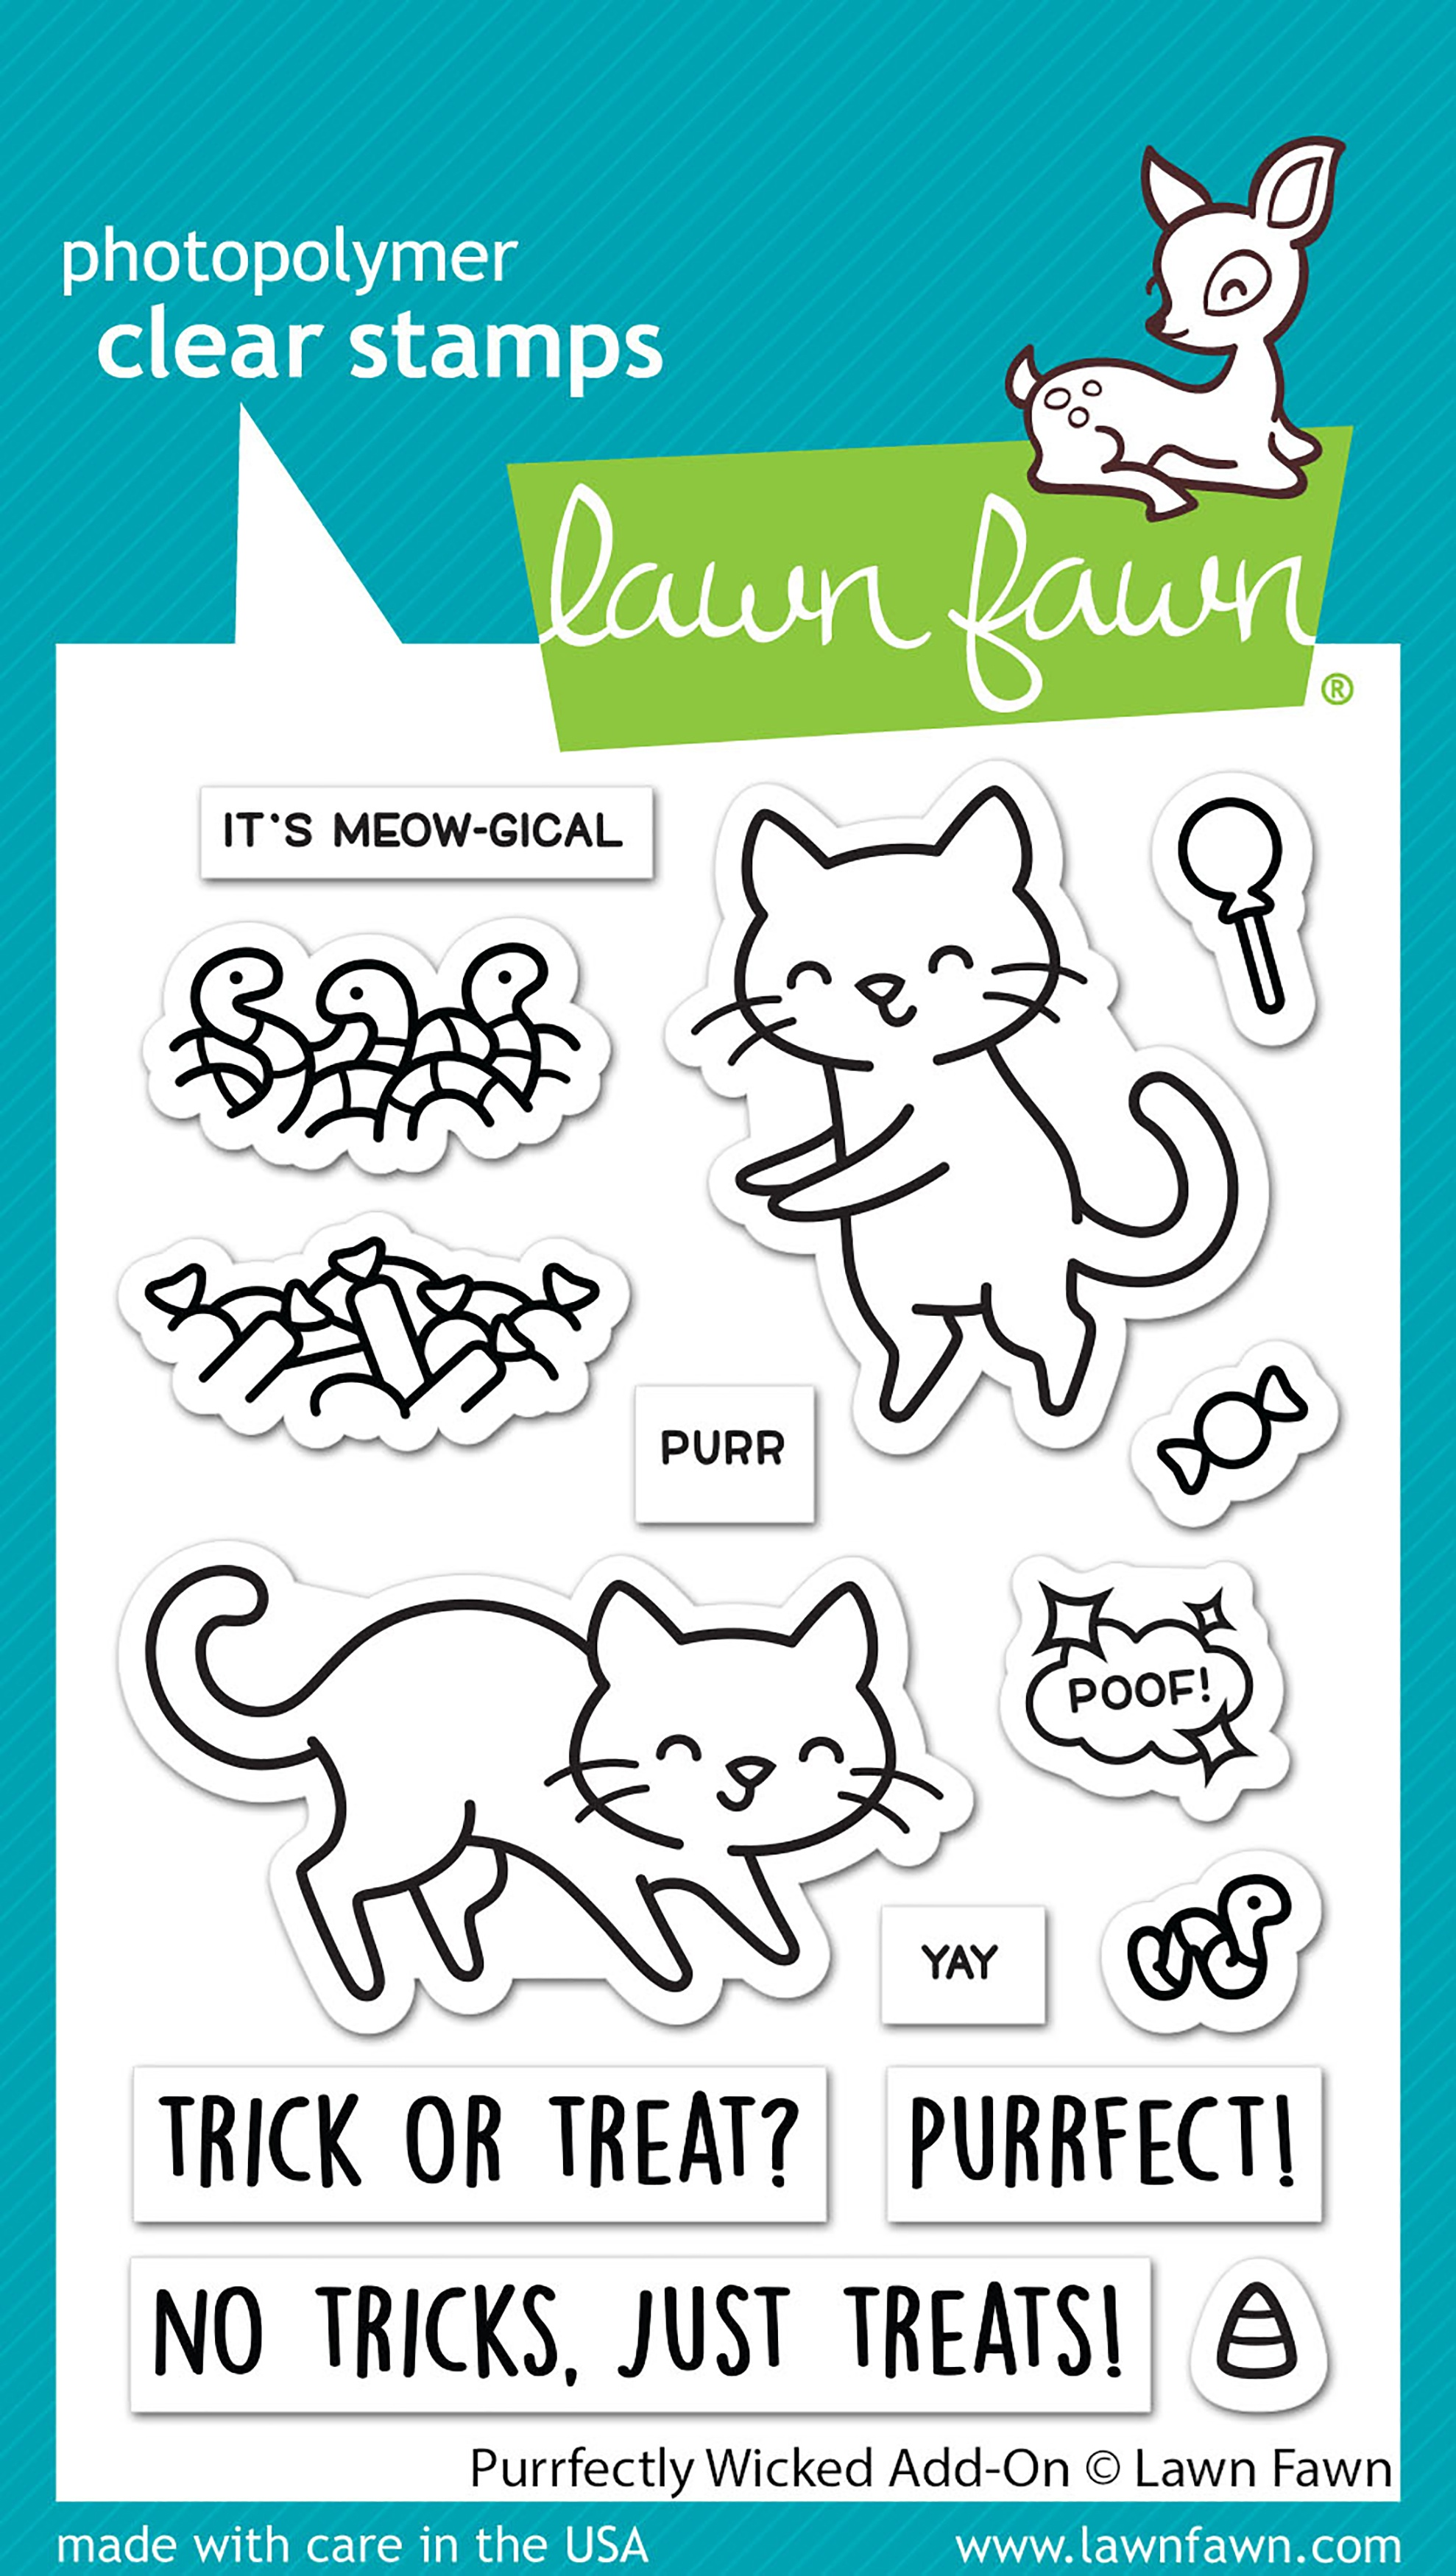 Lawn Fawn - Clear Stamps - Purrfectly Wicked Add-On